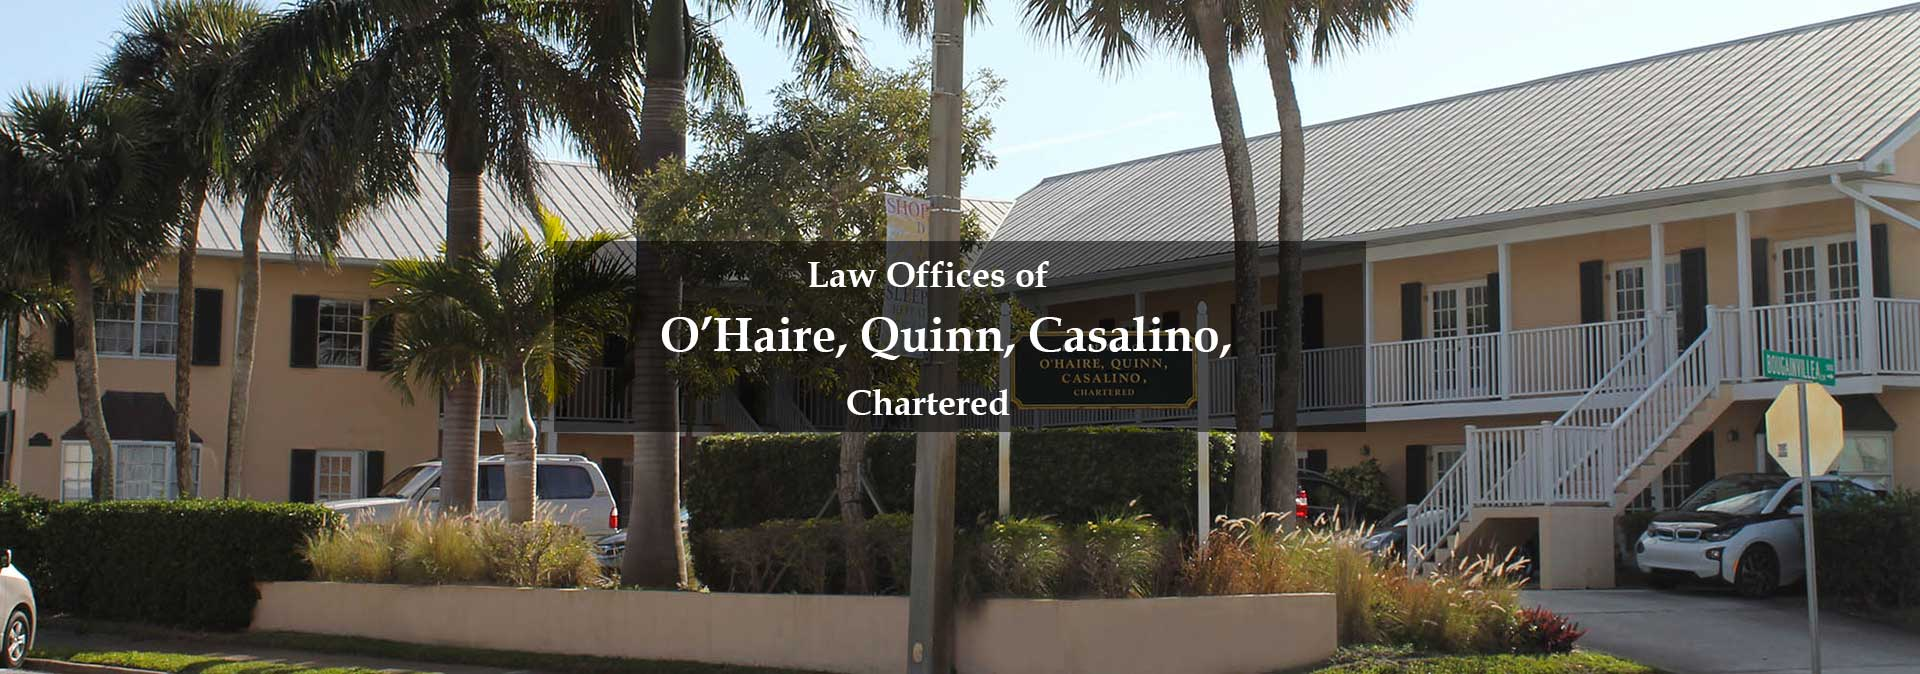 Law Offices of O'Hair, Quinn, & Casalino, Chartered